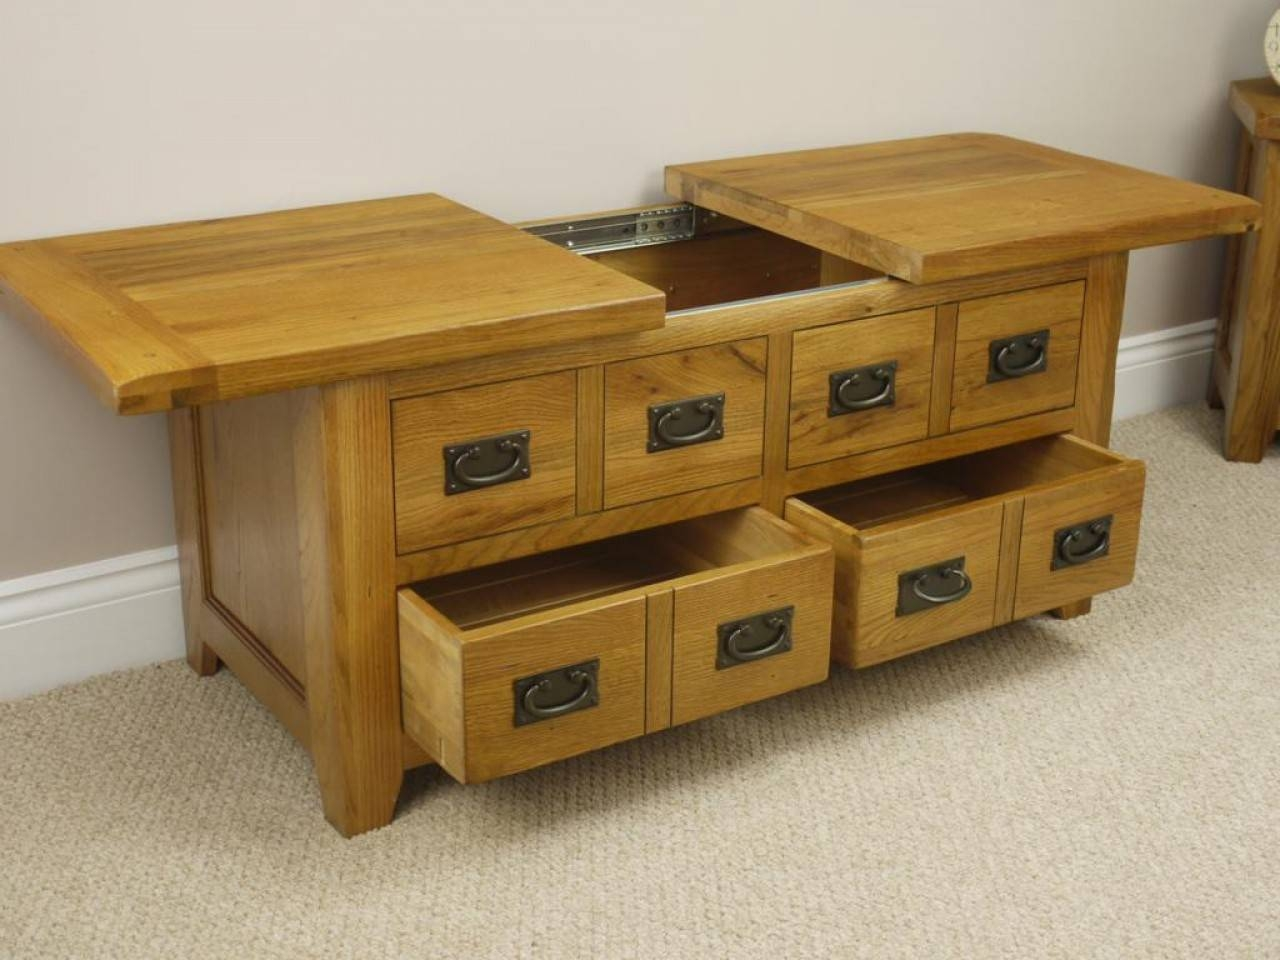 Square Oak Coffee Tables With Storage | Coffee Tables Decoration Regarding Oak Coffee Table Sets (View 20 of 30)